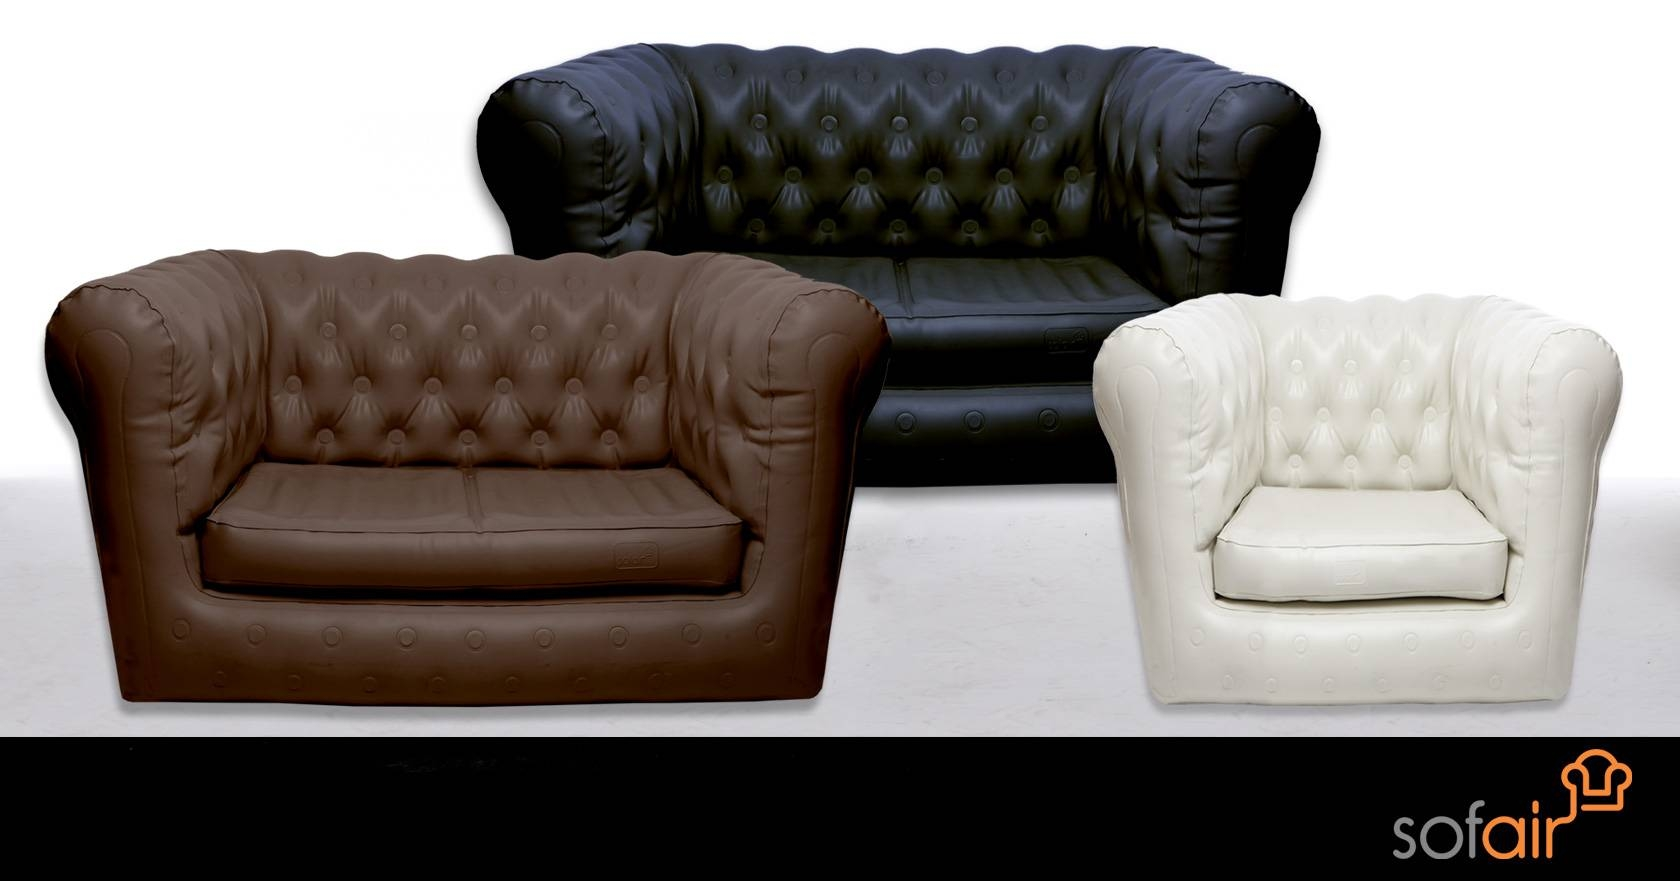 100+ Ideas Inflatable Furniture Set On Vouum pertaining to Inflatable Sofas and Chairs (Image 1 of 15)